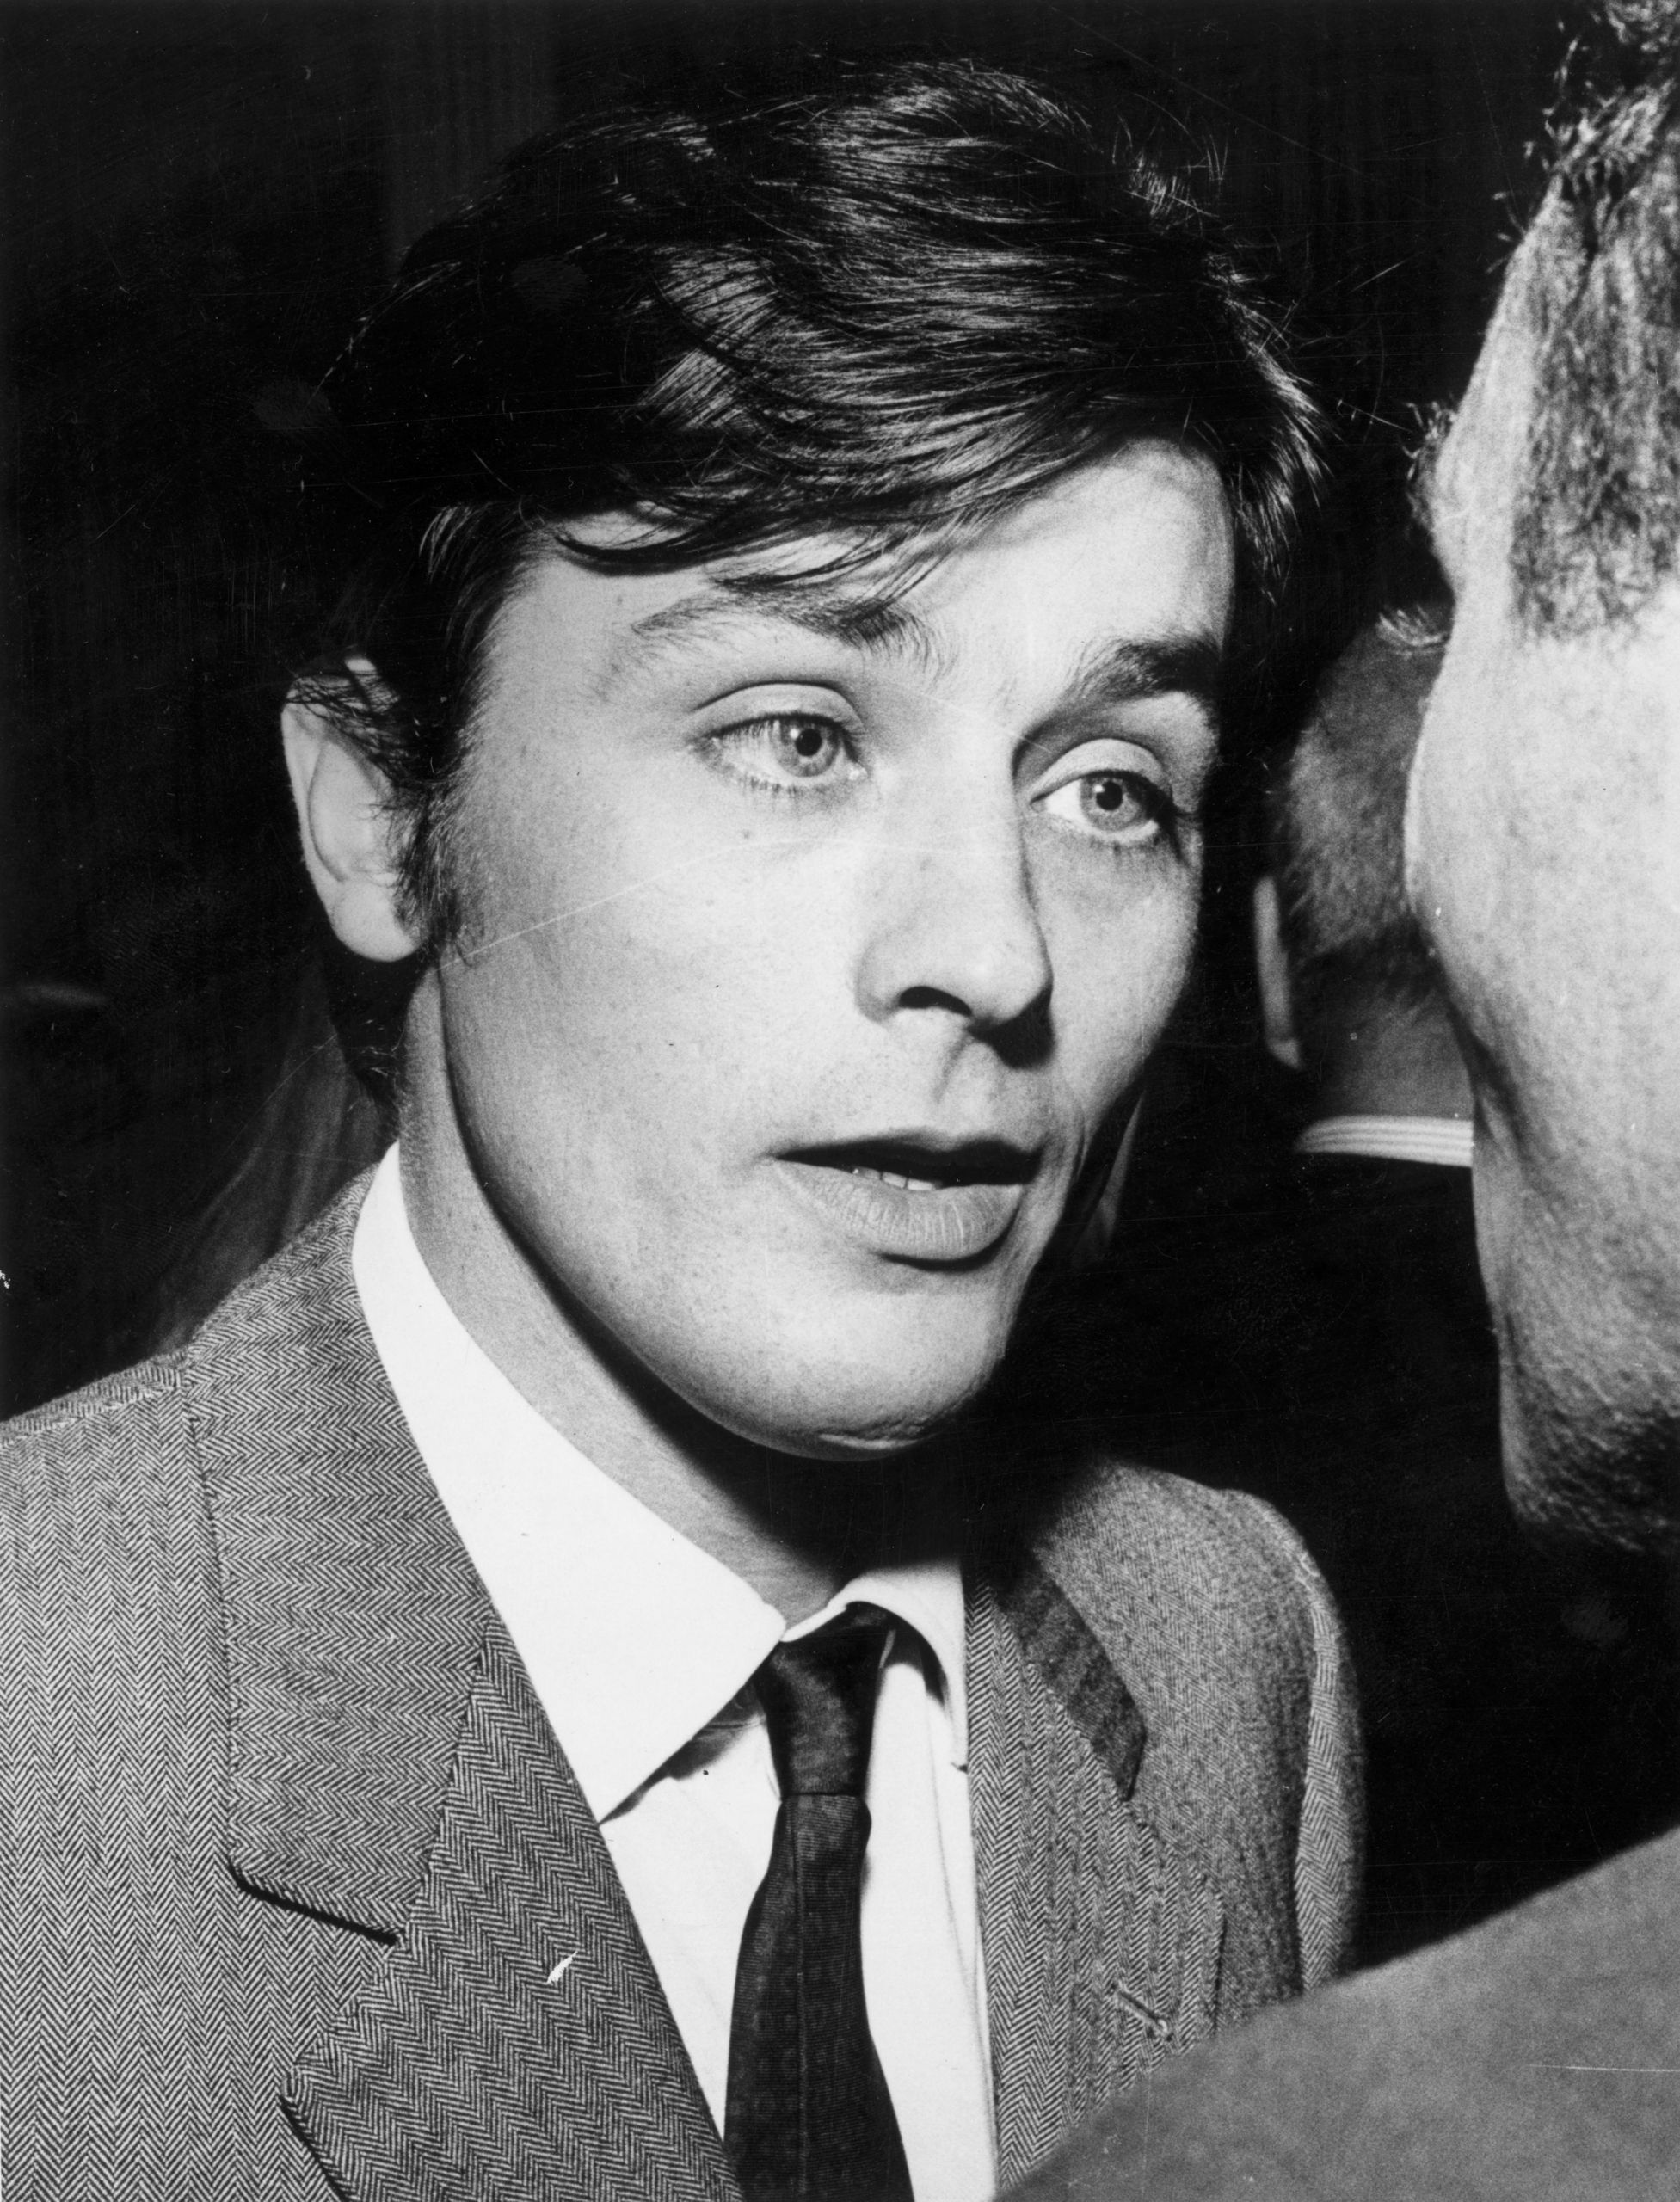 News and entertainment: alain delon (Jan 06 2013 08:57:50)